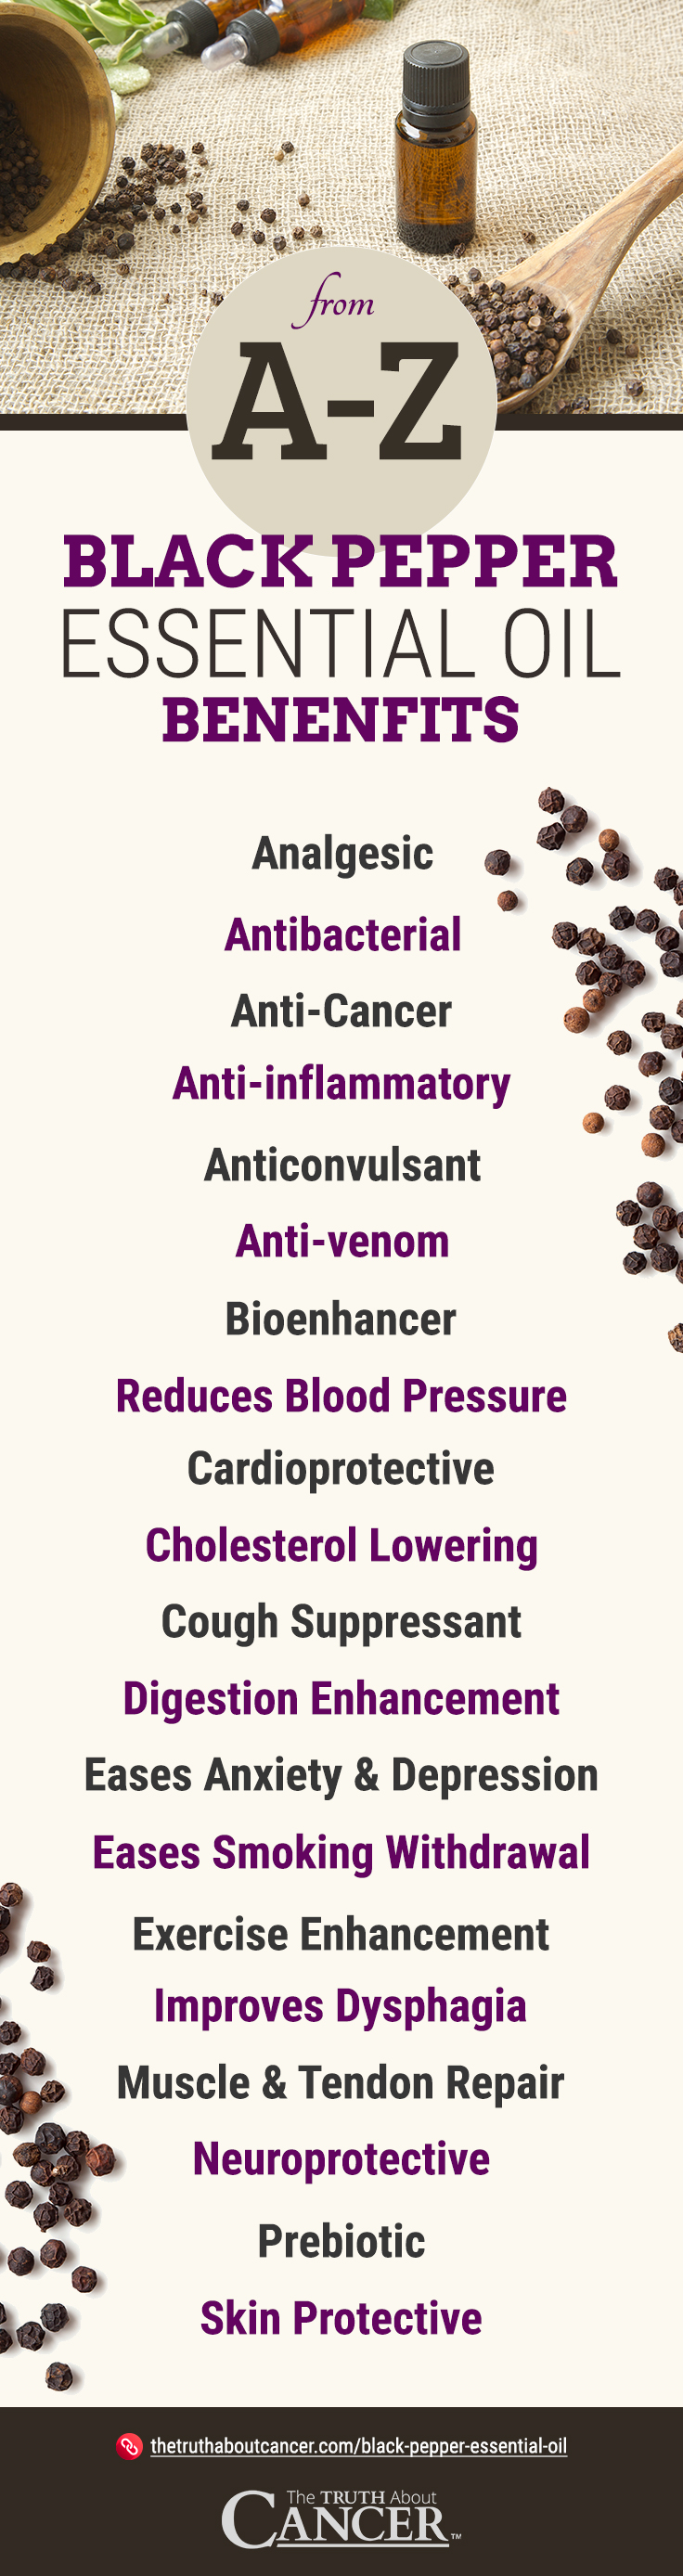 Black Pepper EO - Infographic